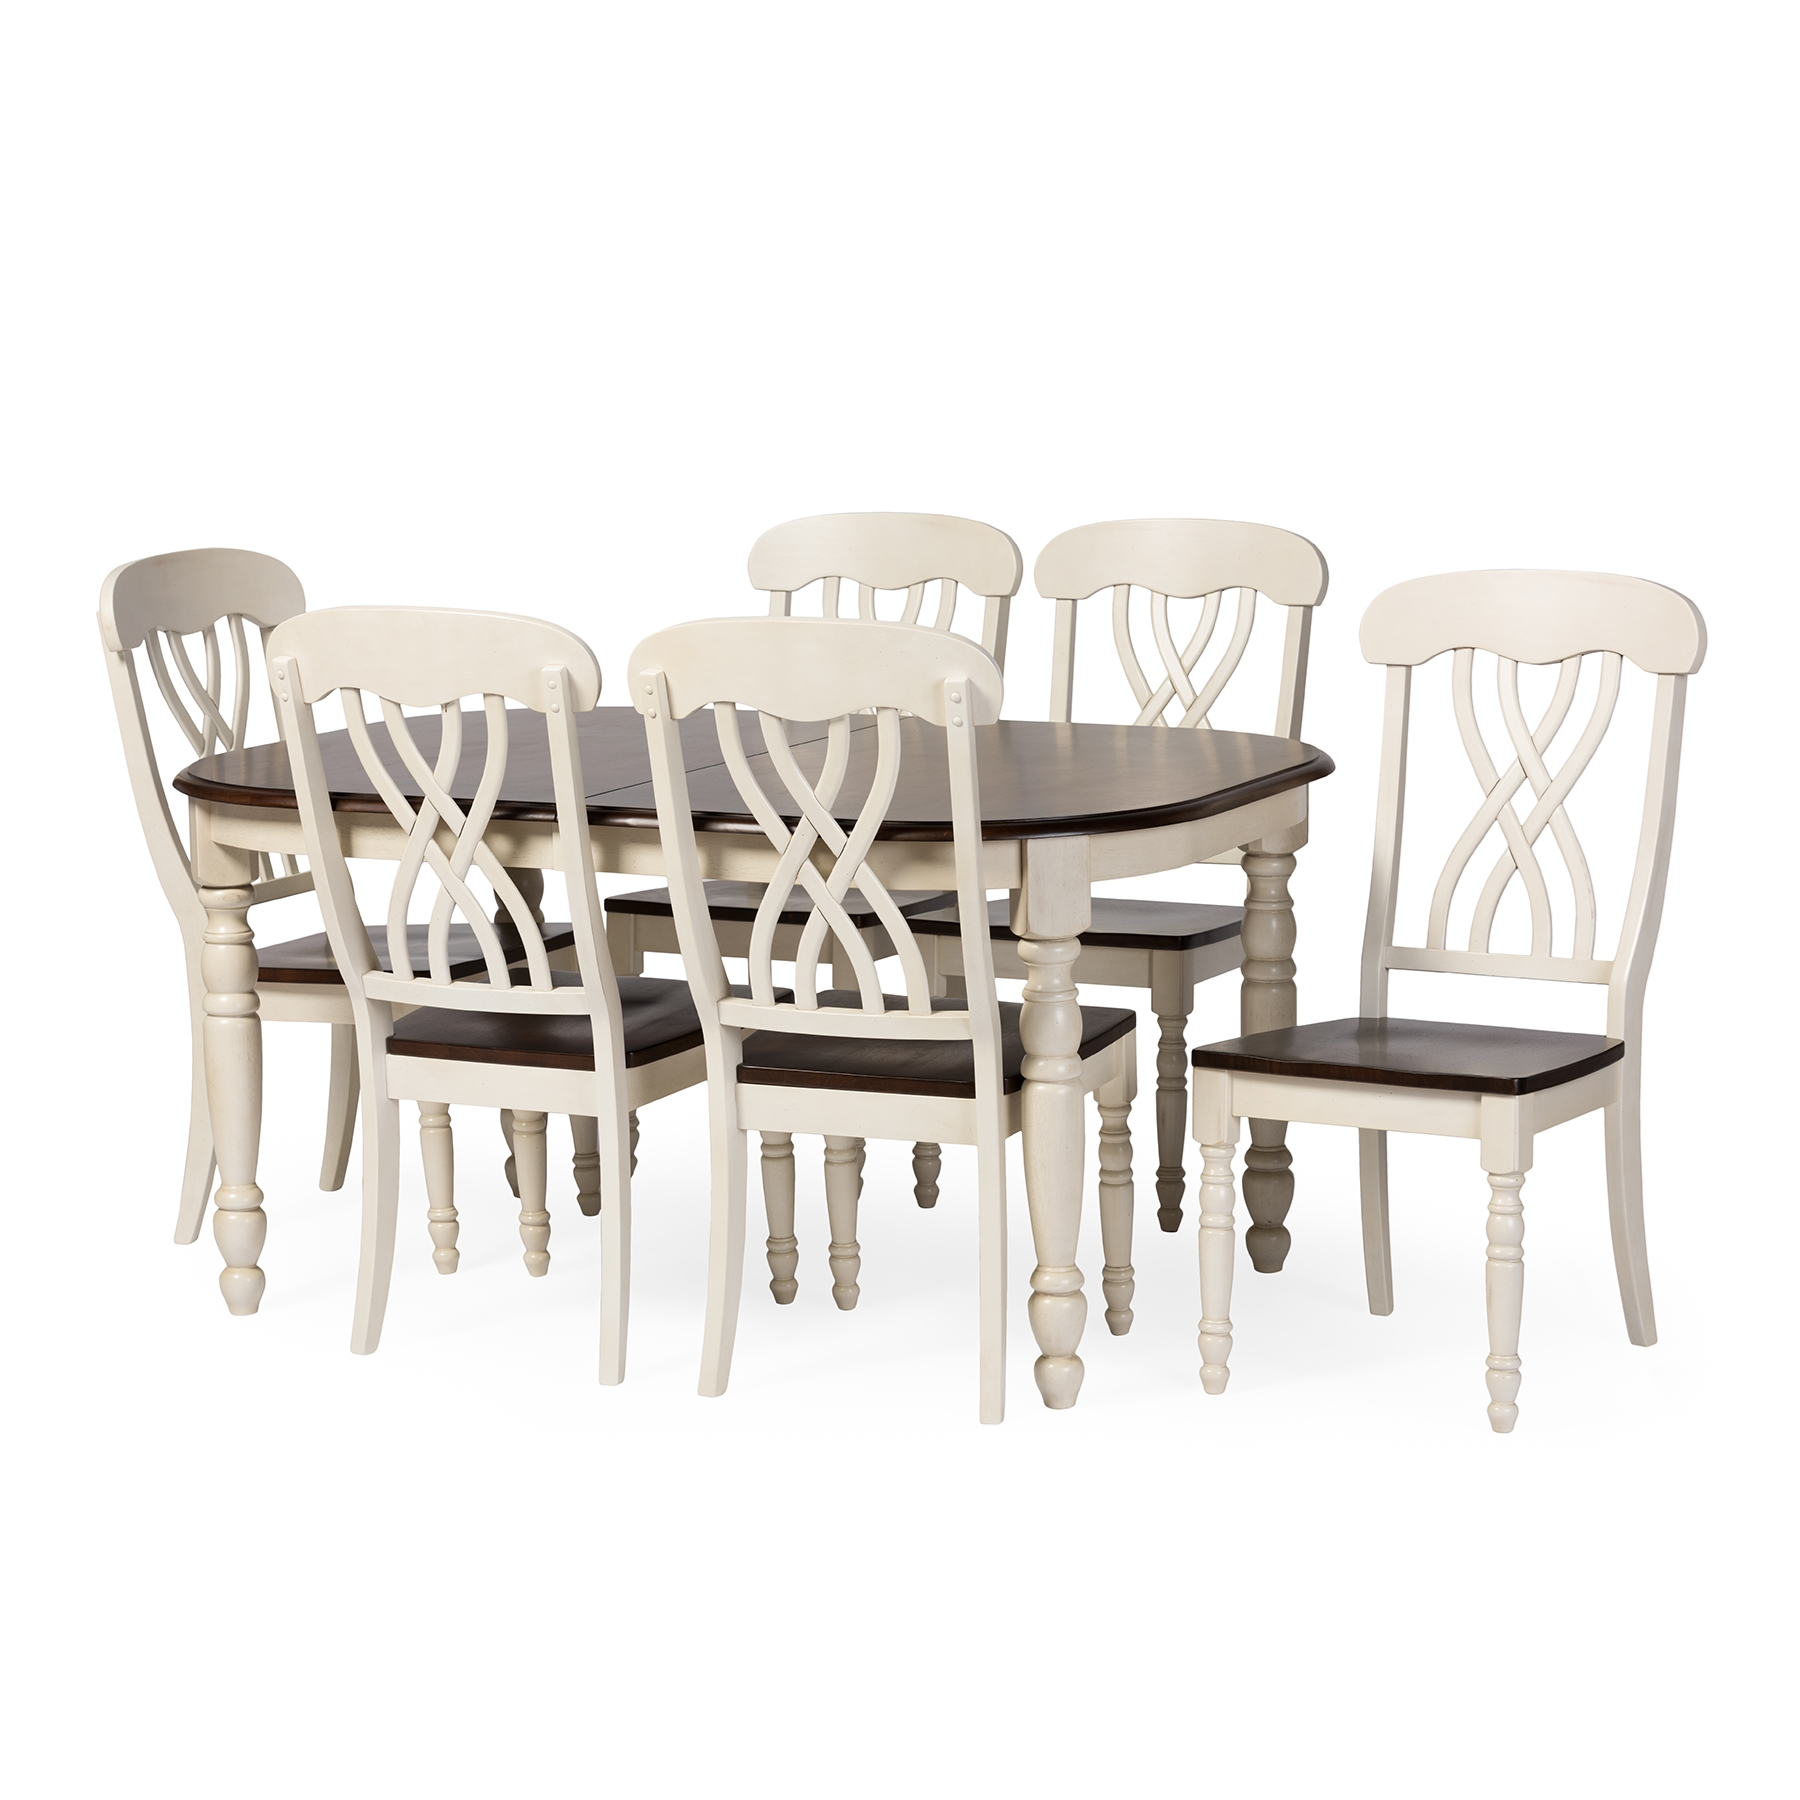 Baxton Studio | Wholesale Dining Sets | Wholesale Dining Room Furniture |  Baxton Studio Furniture